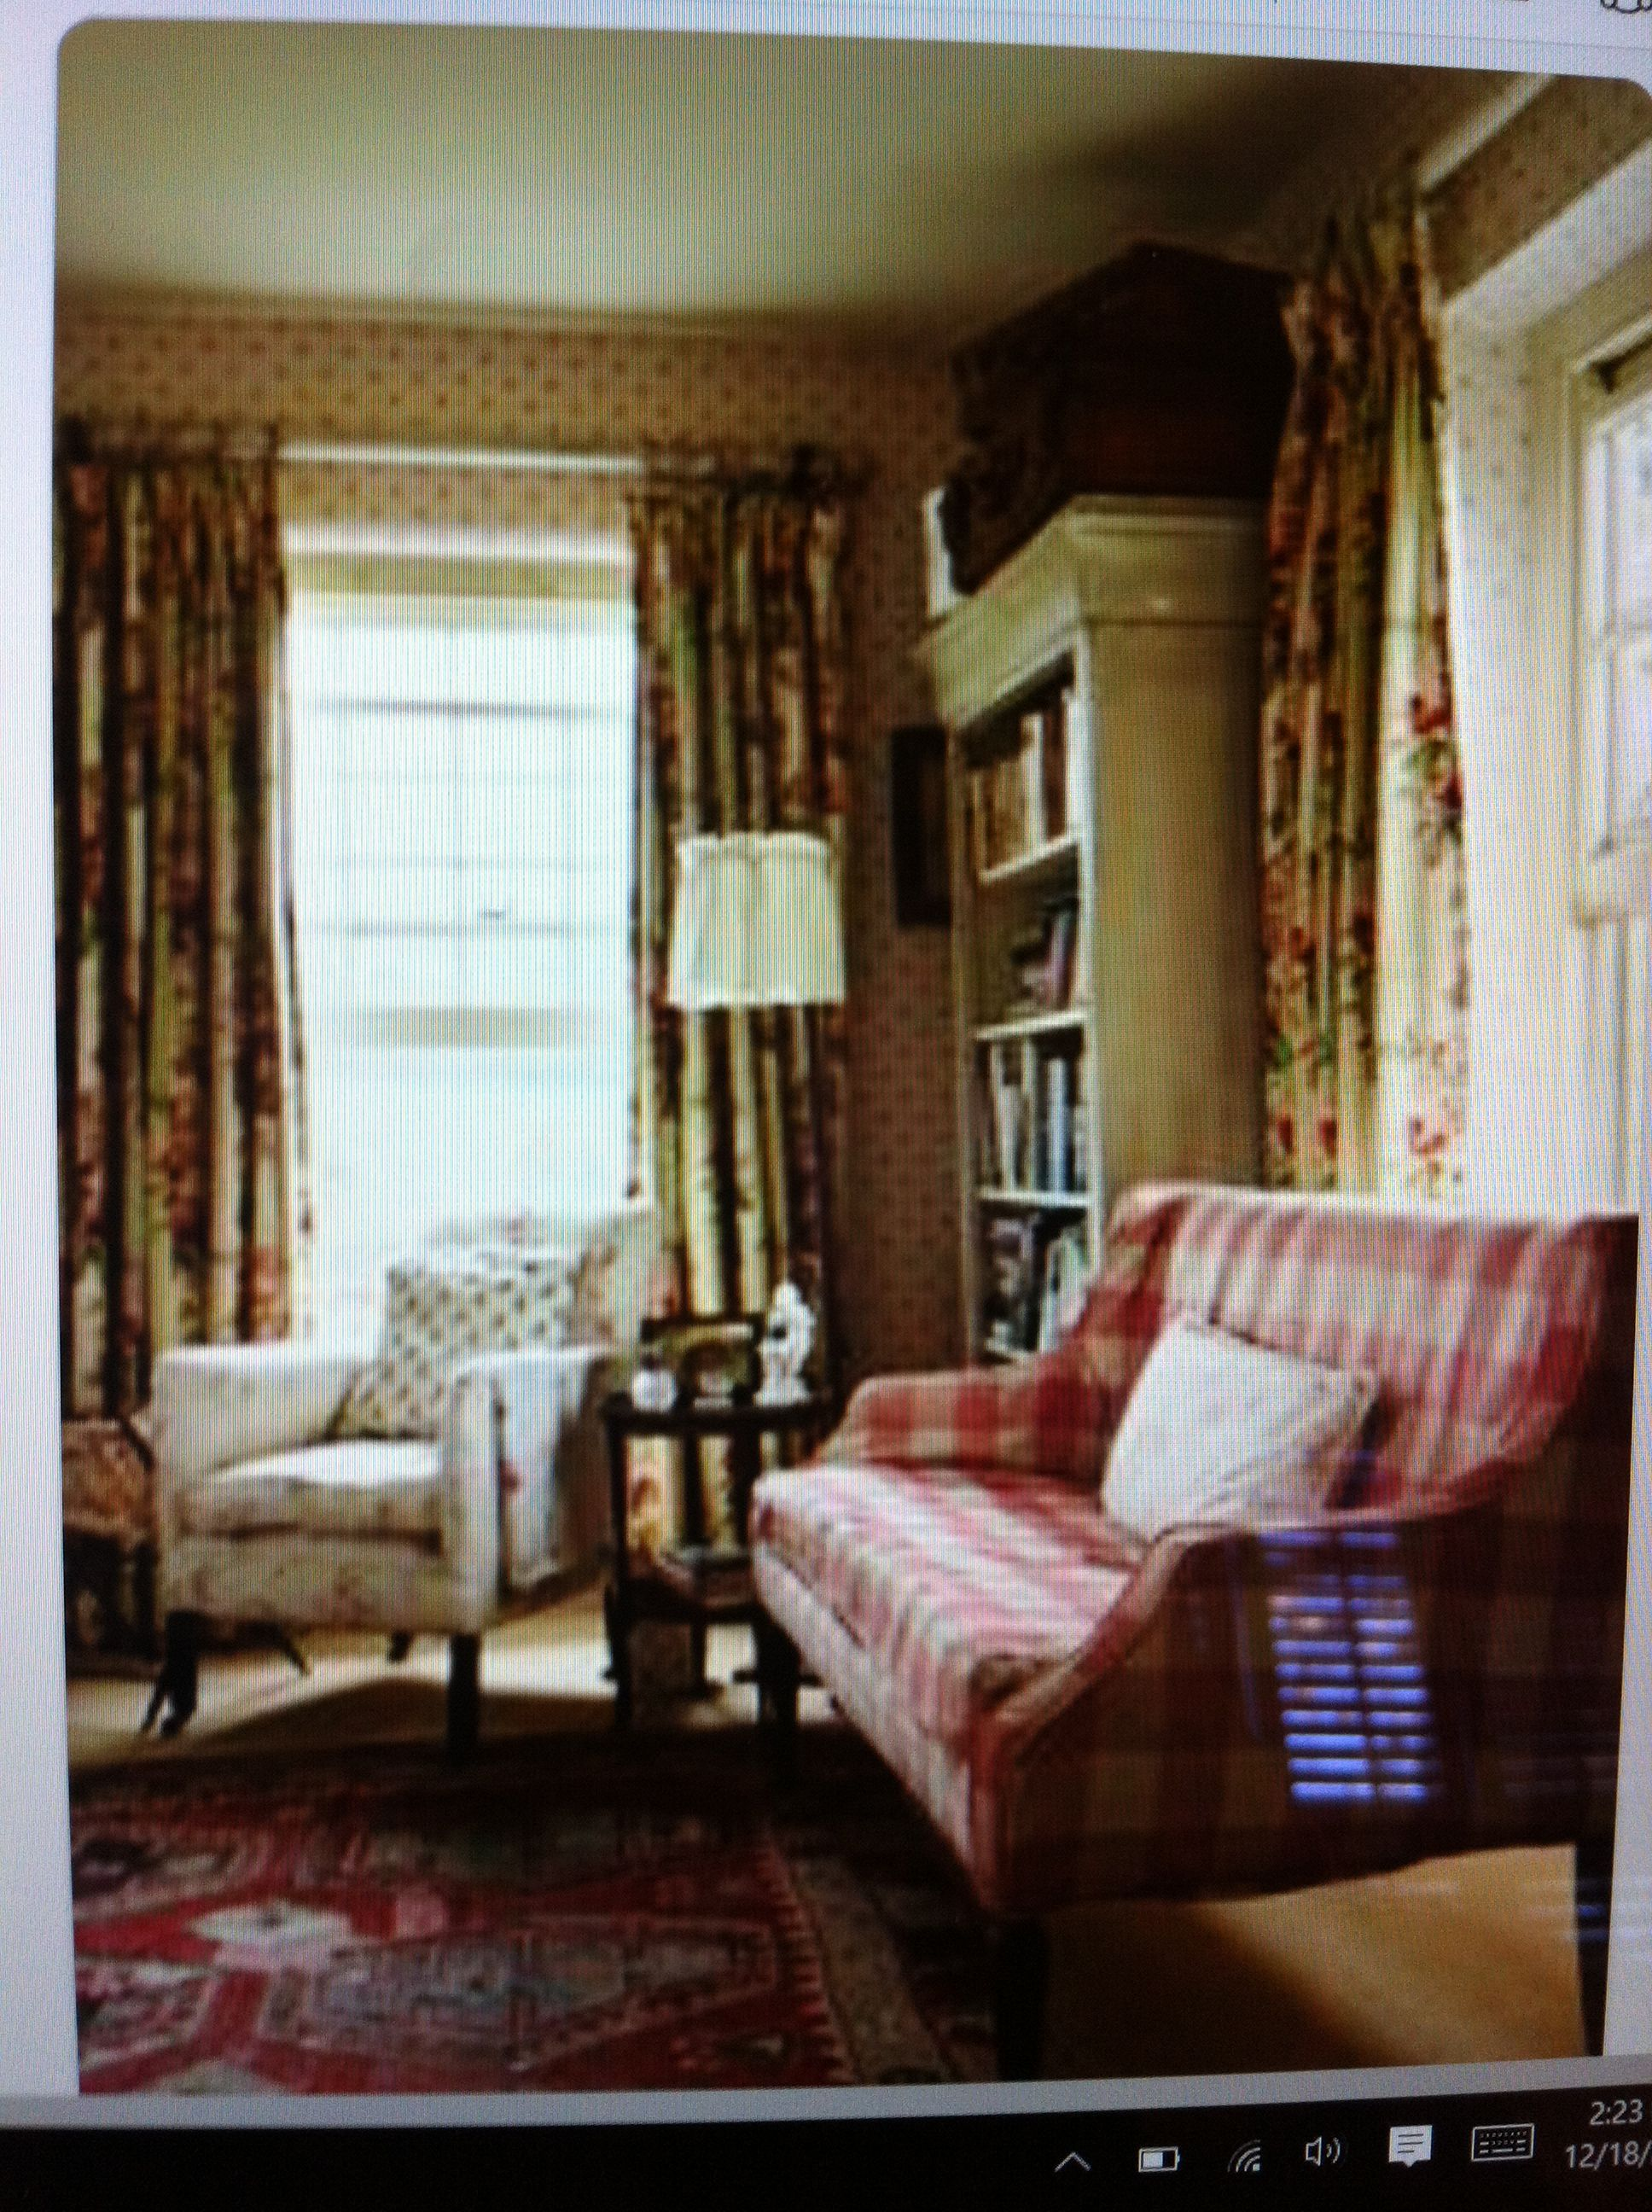 Pin by Marcy Overcash on fabric/textiles/trim | Pinterest | Maison ...